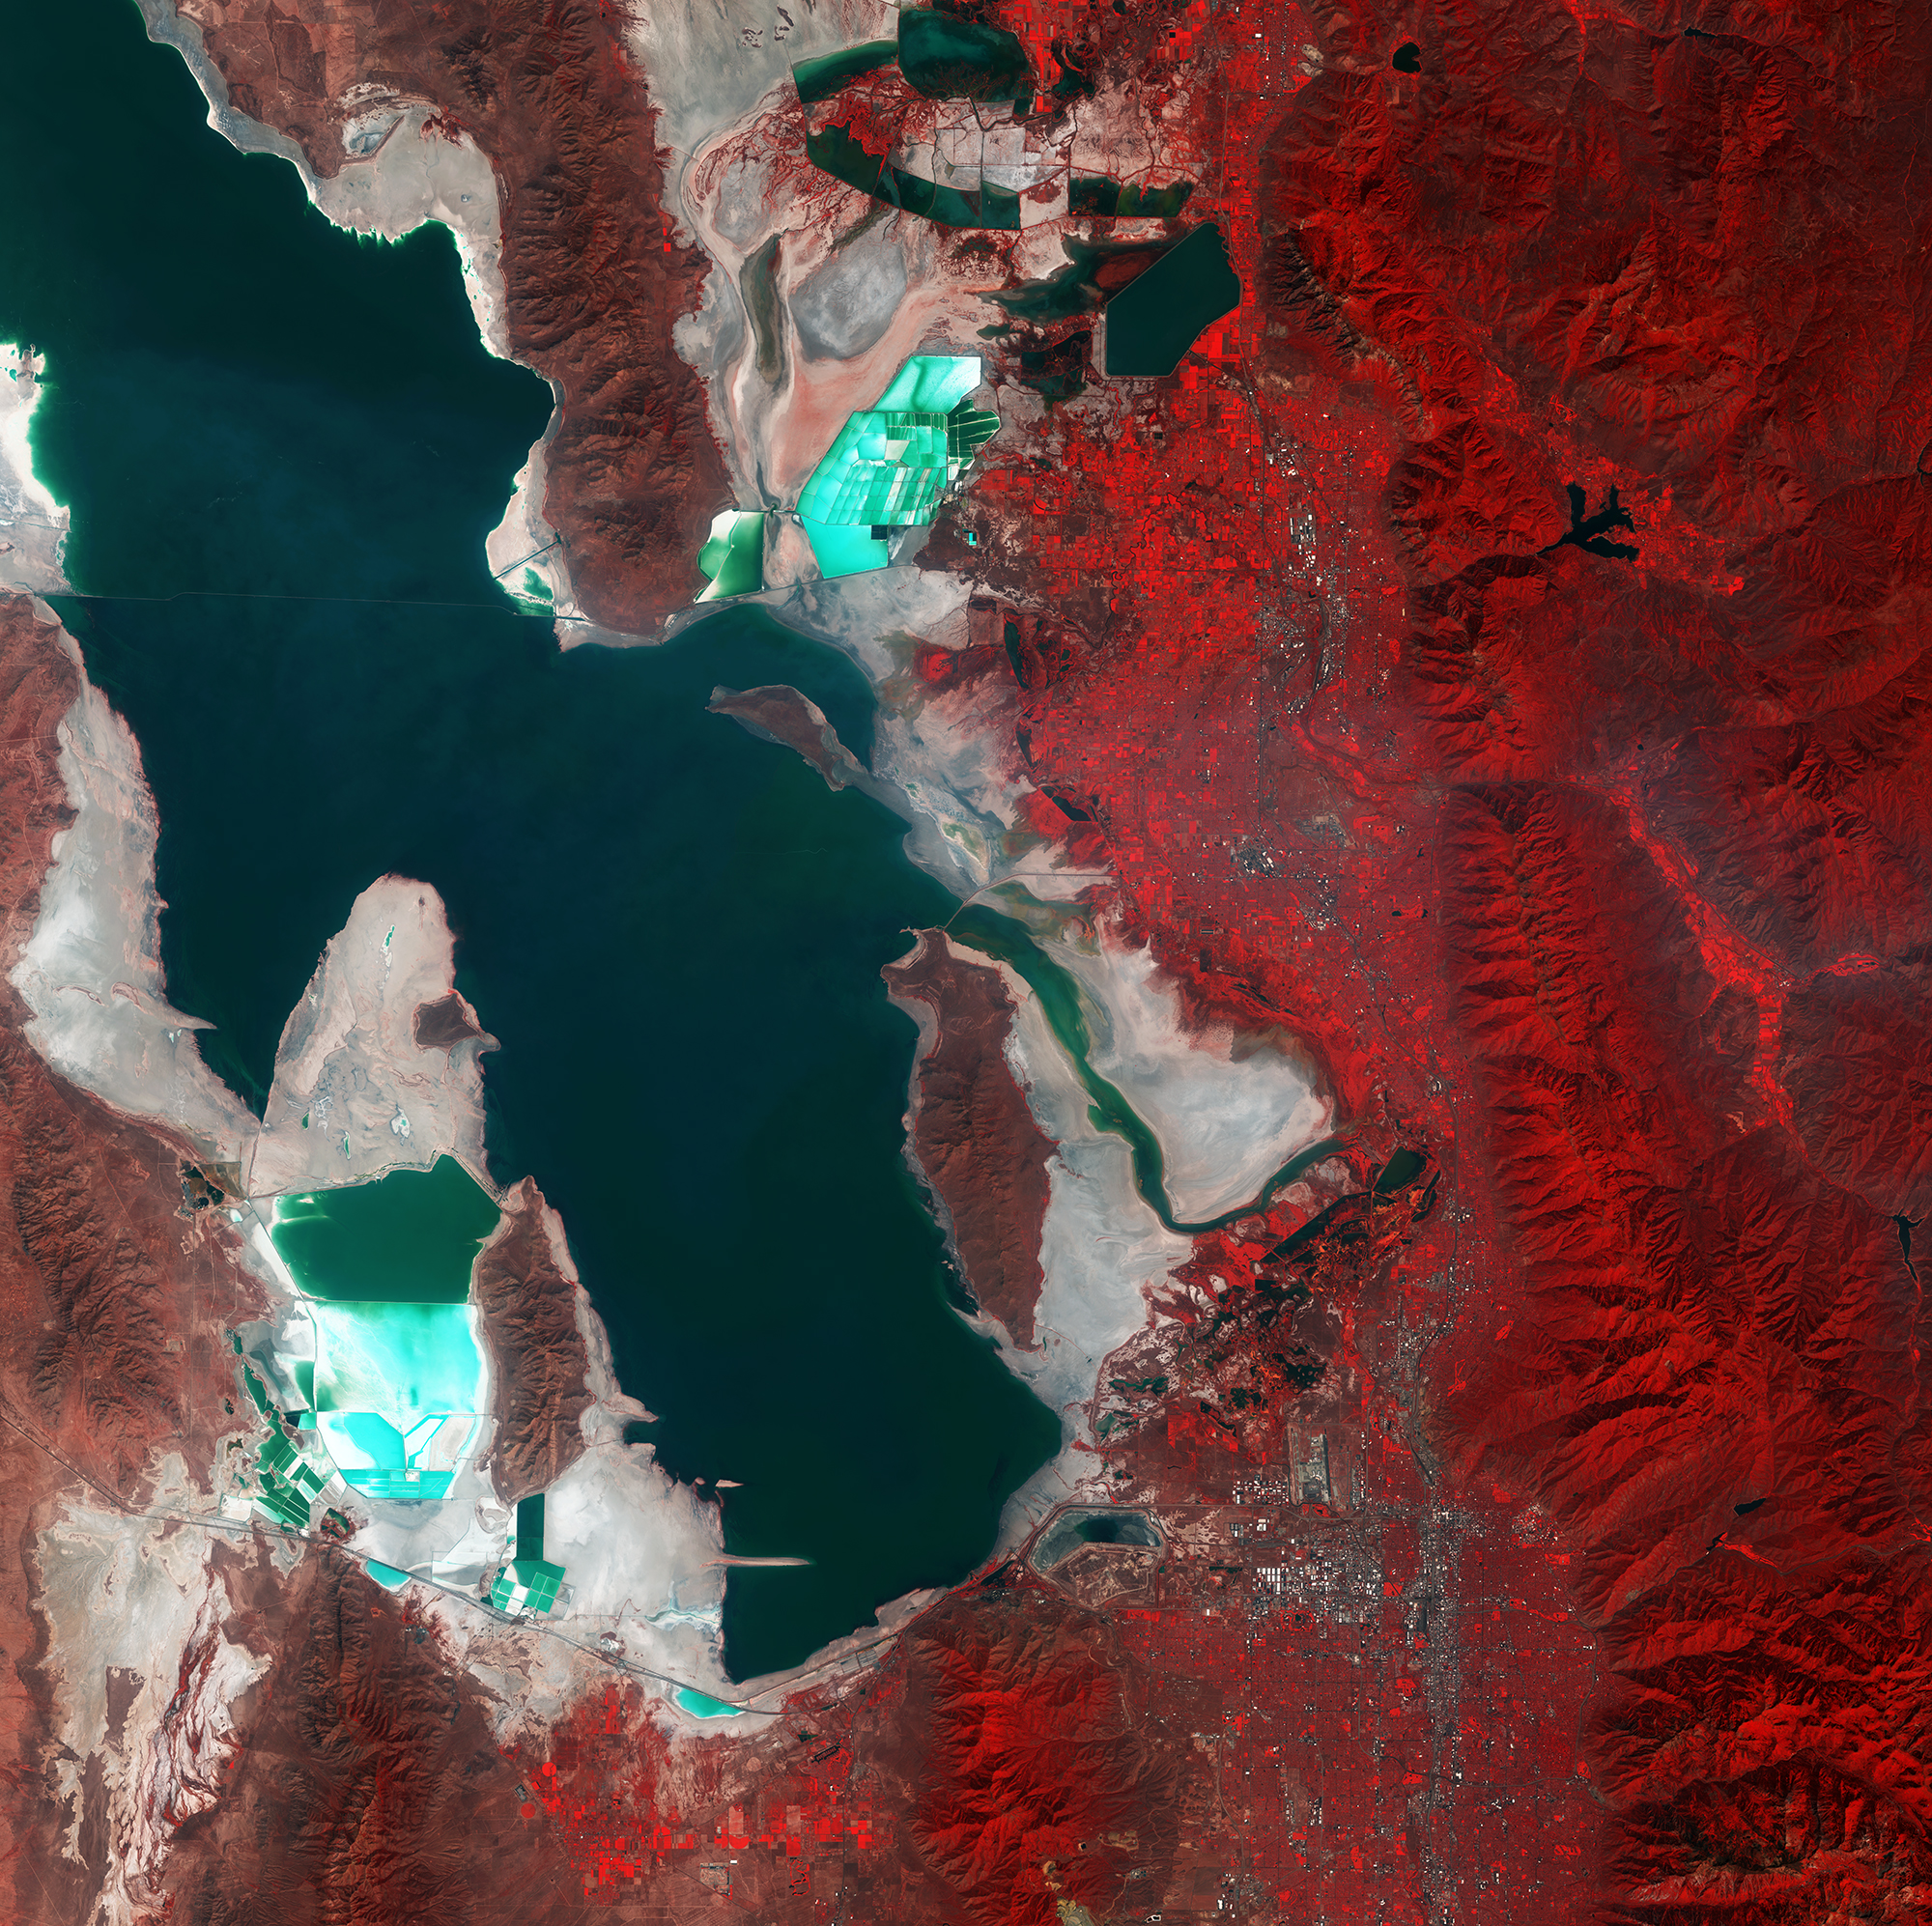 Space In Images 2016 03 Puzzle Of Utah